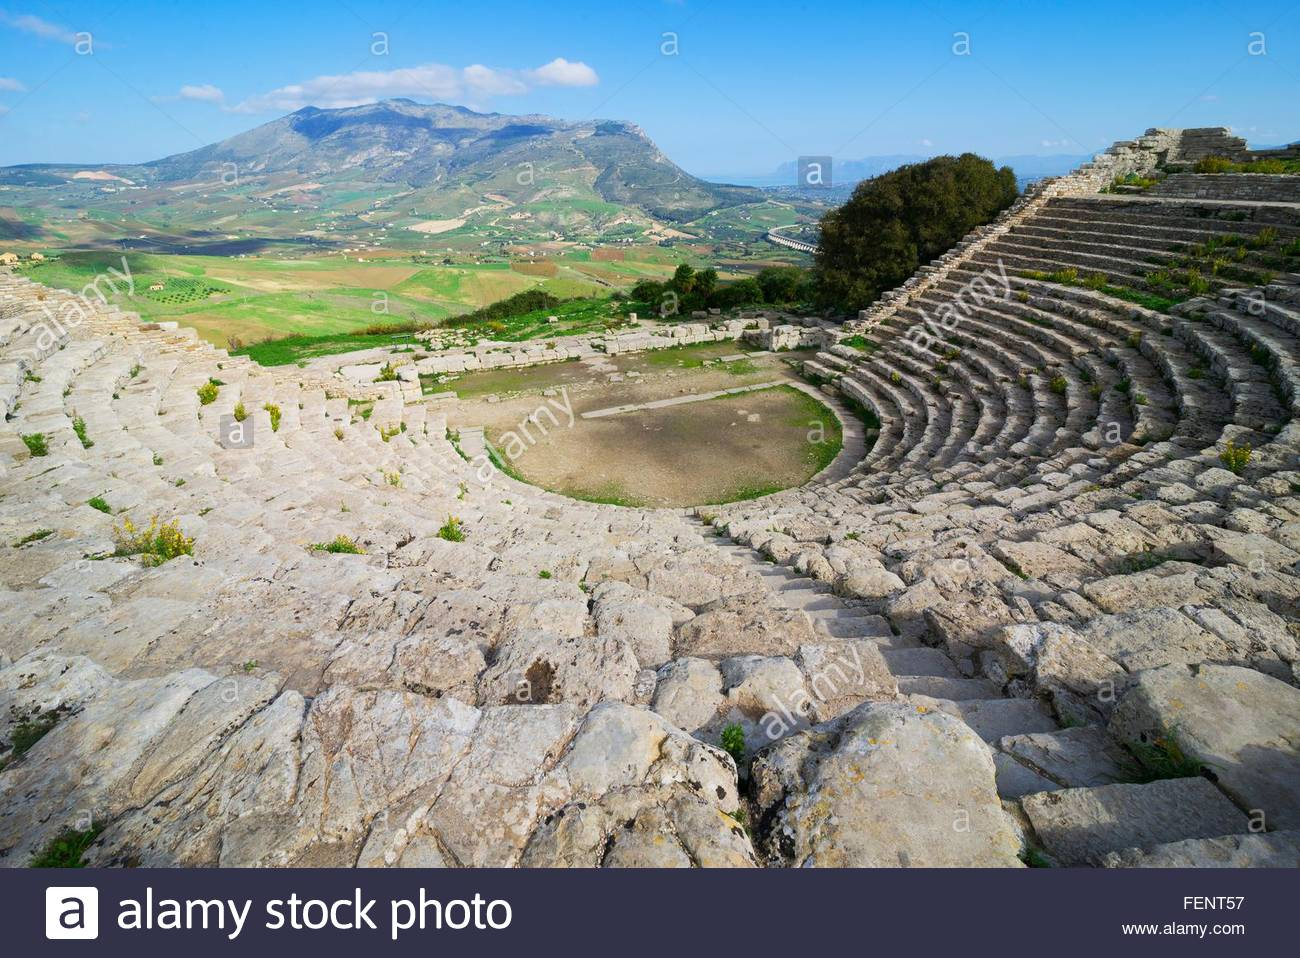 Elevated view of landscape from ancient Greek amphitheatre, Segesta, Sicily, Italy - Stock Image